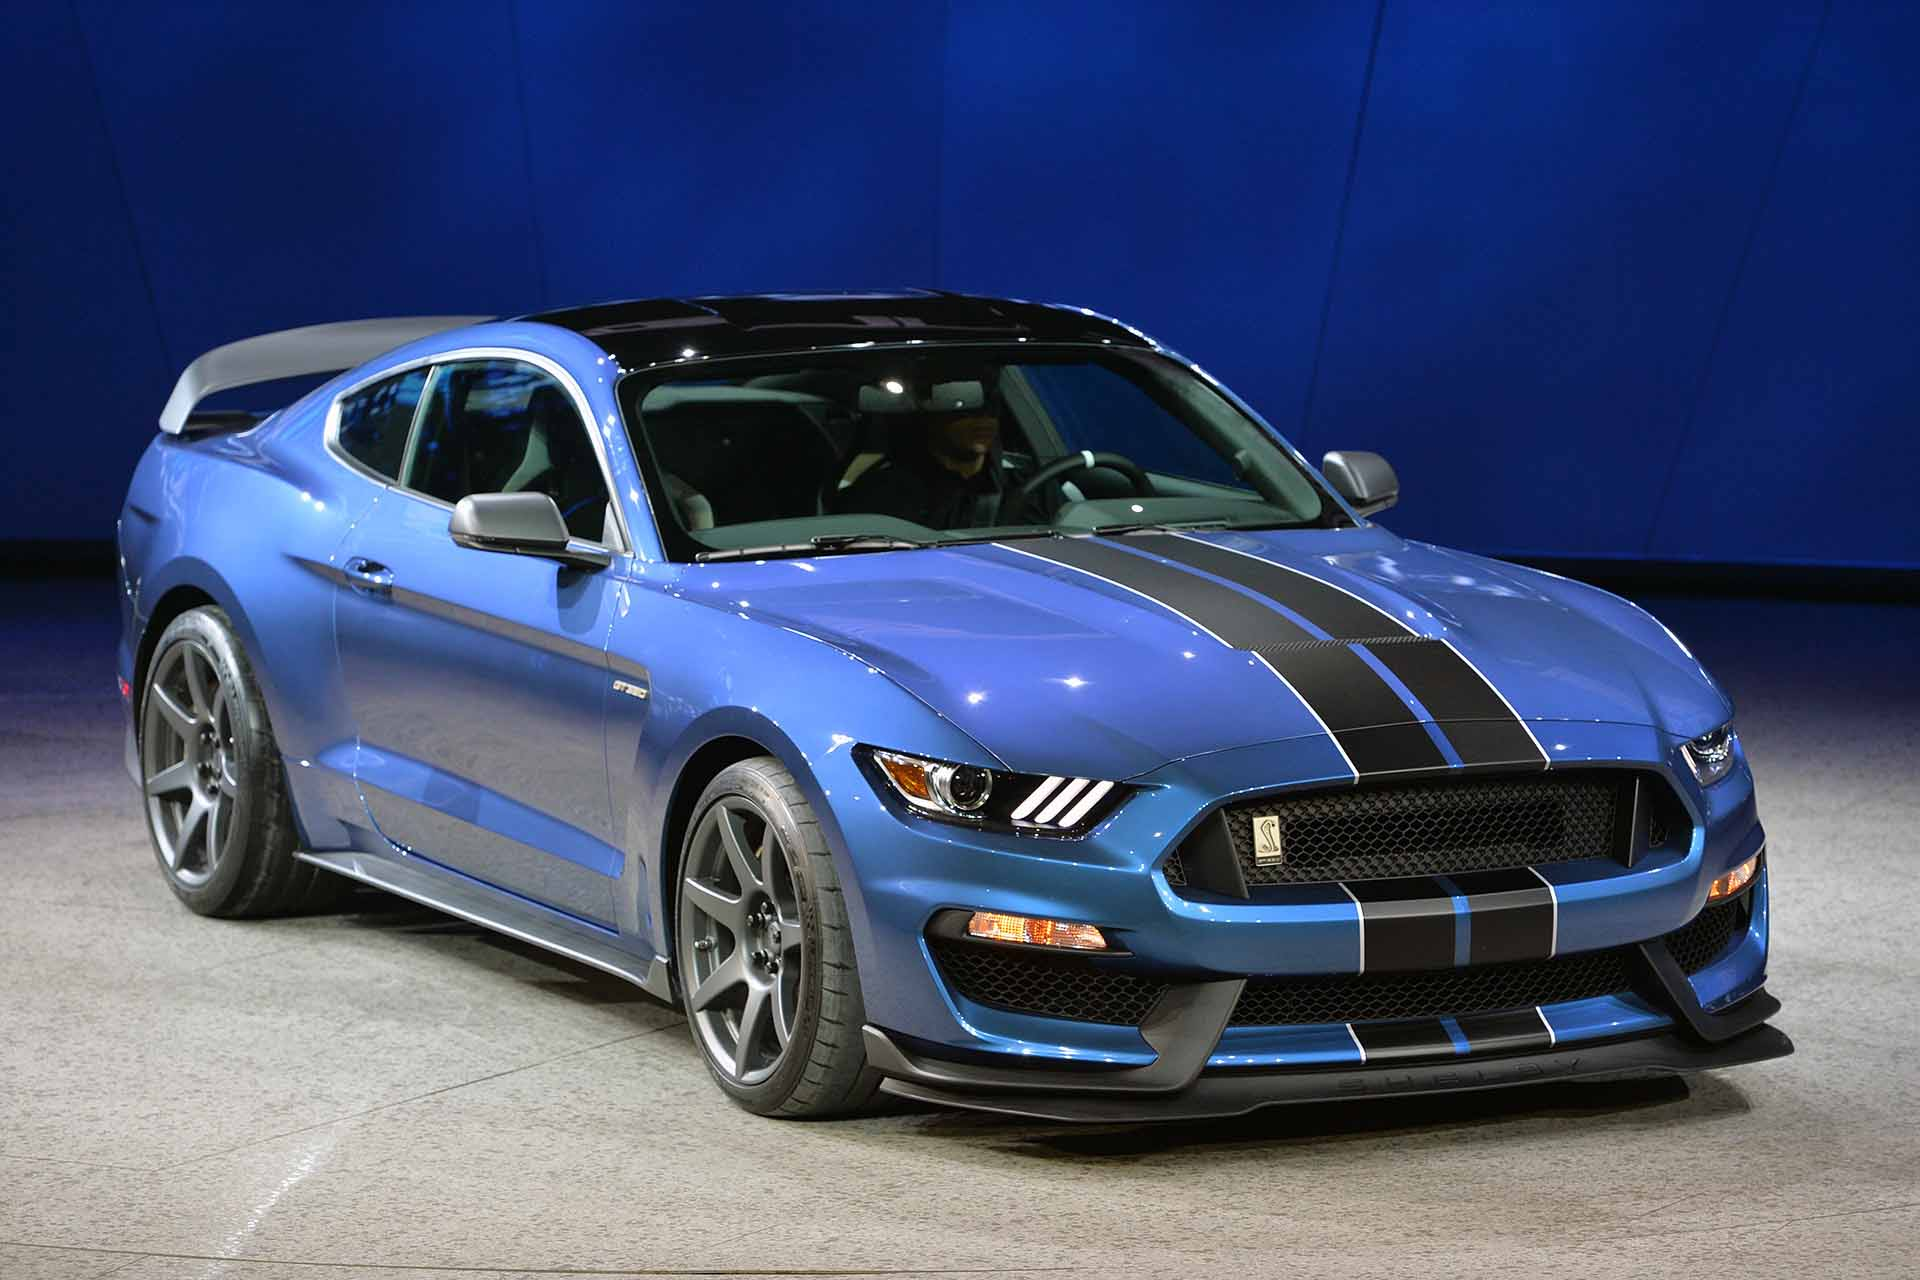 20152016 Shelby GT350R Mustang 1920x1280